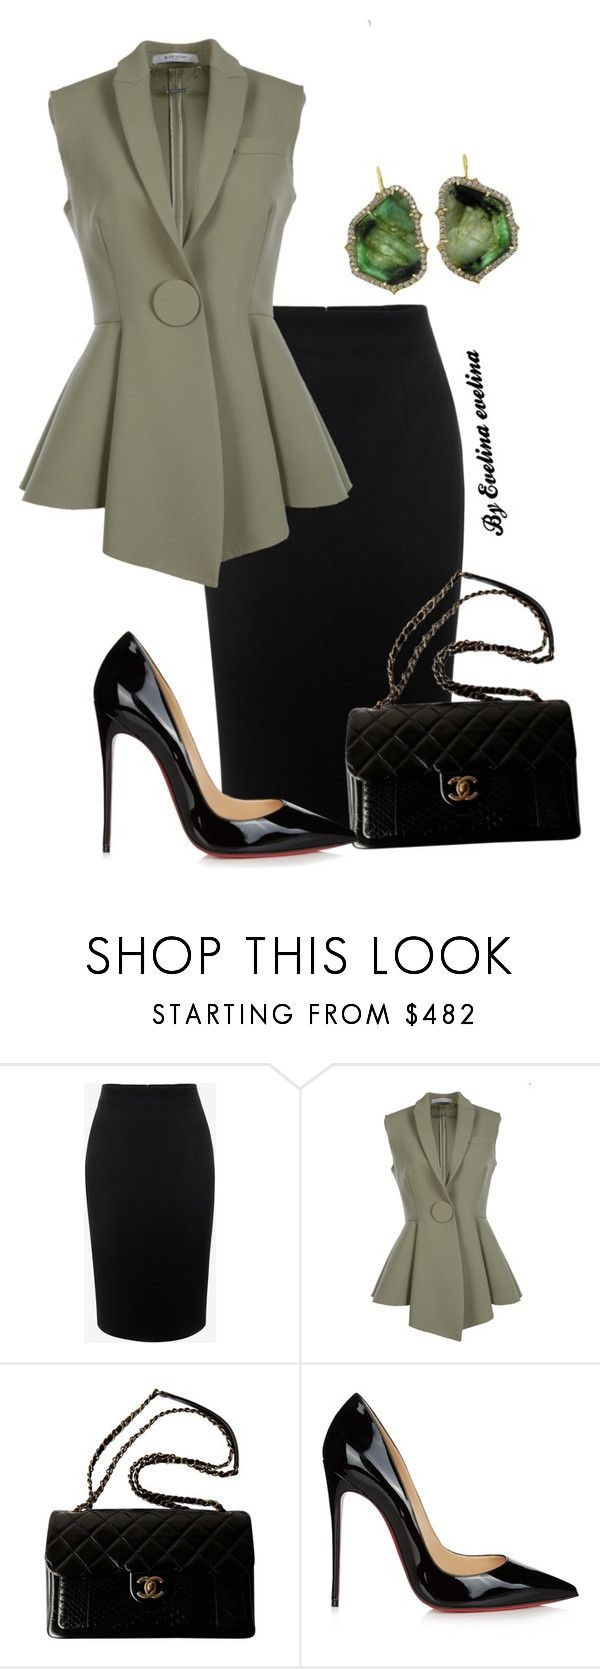 """EVE"" by evelina-er ❤ liked on Polyvore featuring Alexander McQueen, Givenchy, Chanel, Christian Louboutin and Sylva & Cie"